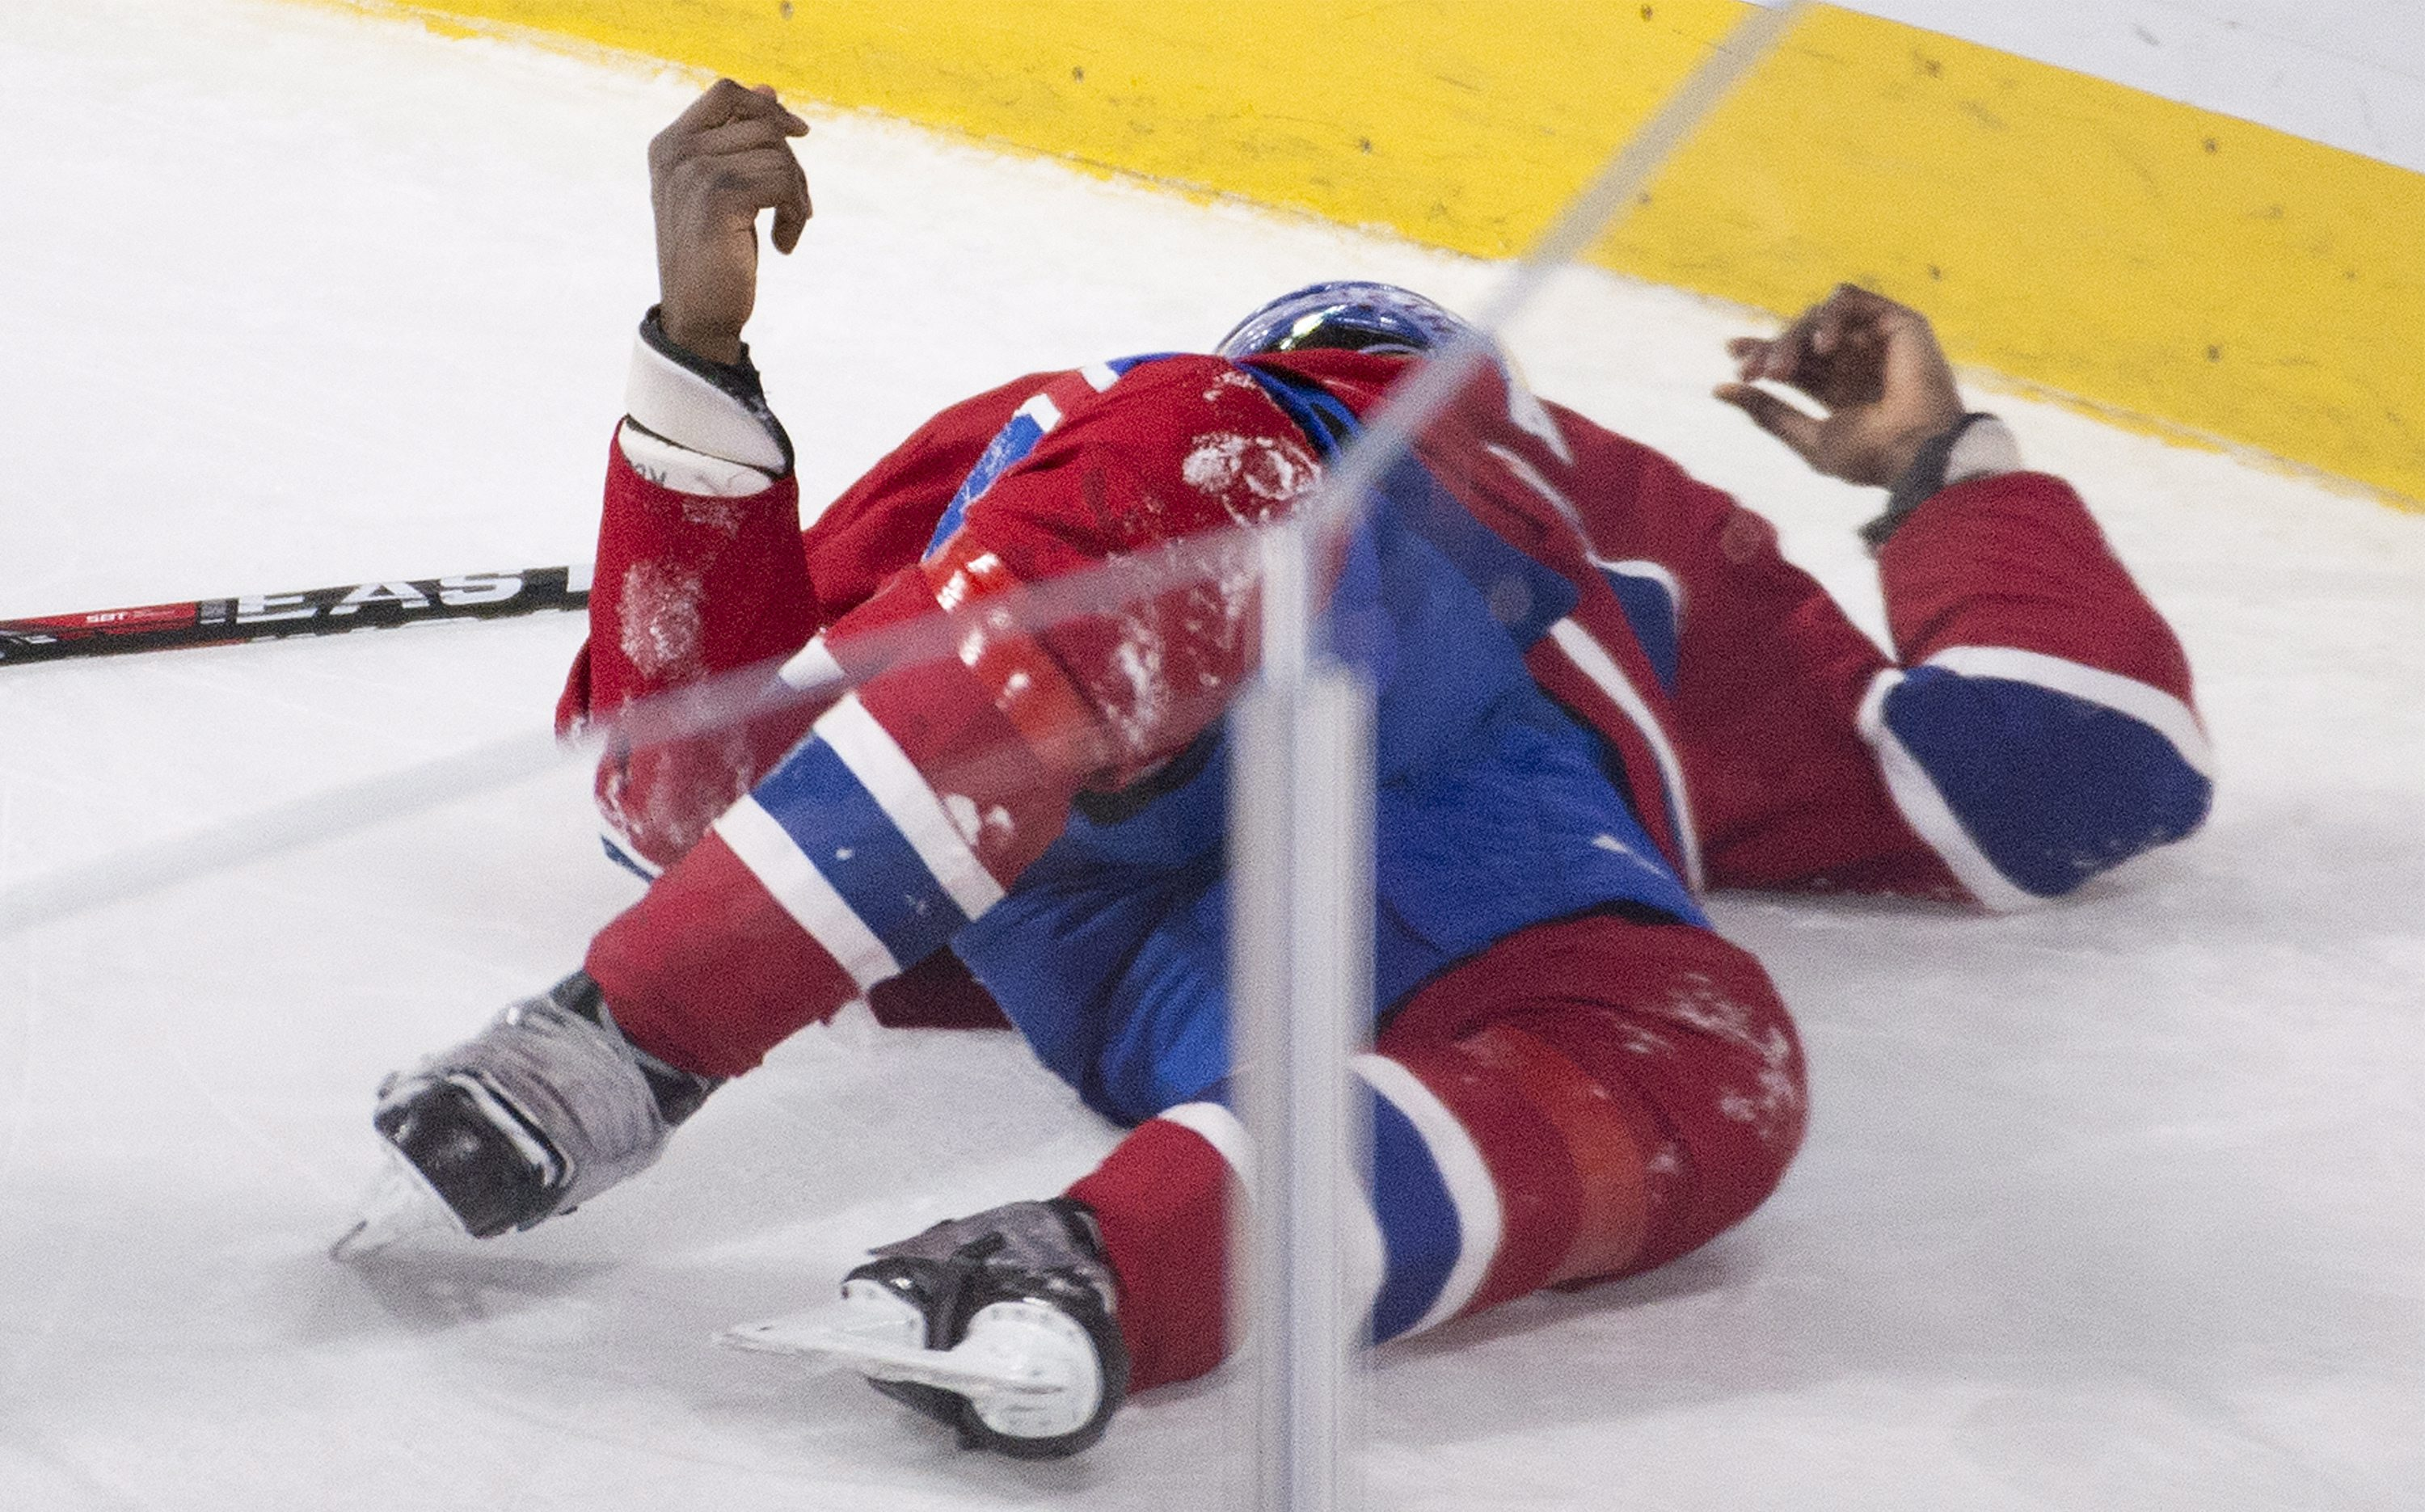 Montreal Canadiens' P.K. Subban lies injured on the ice during during the third period of an NHL hockey game against the Buffalo Sabres on Thursday, March 10, 2016, in Montreal. (Graham Hughes/The Canadian Press via AP)